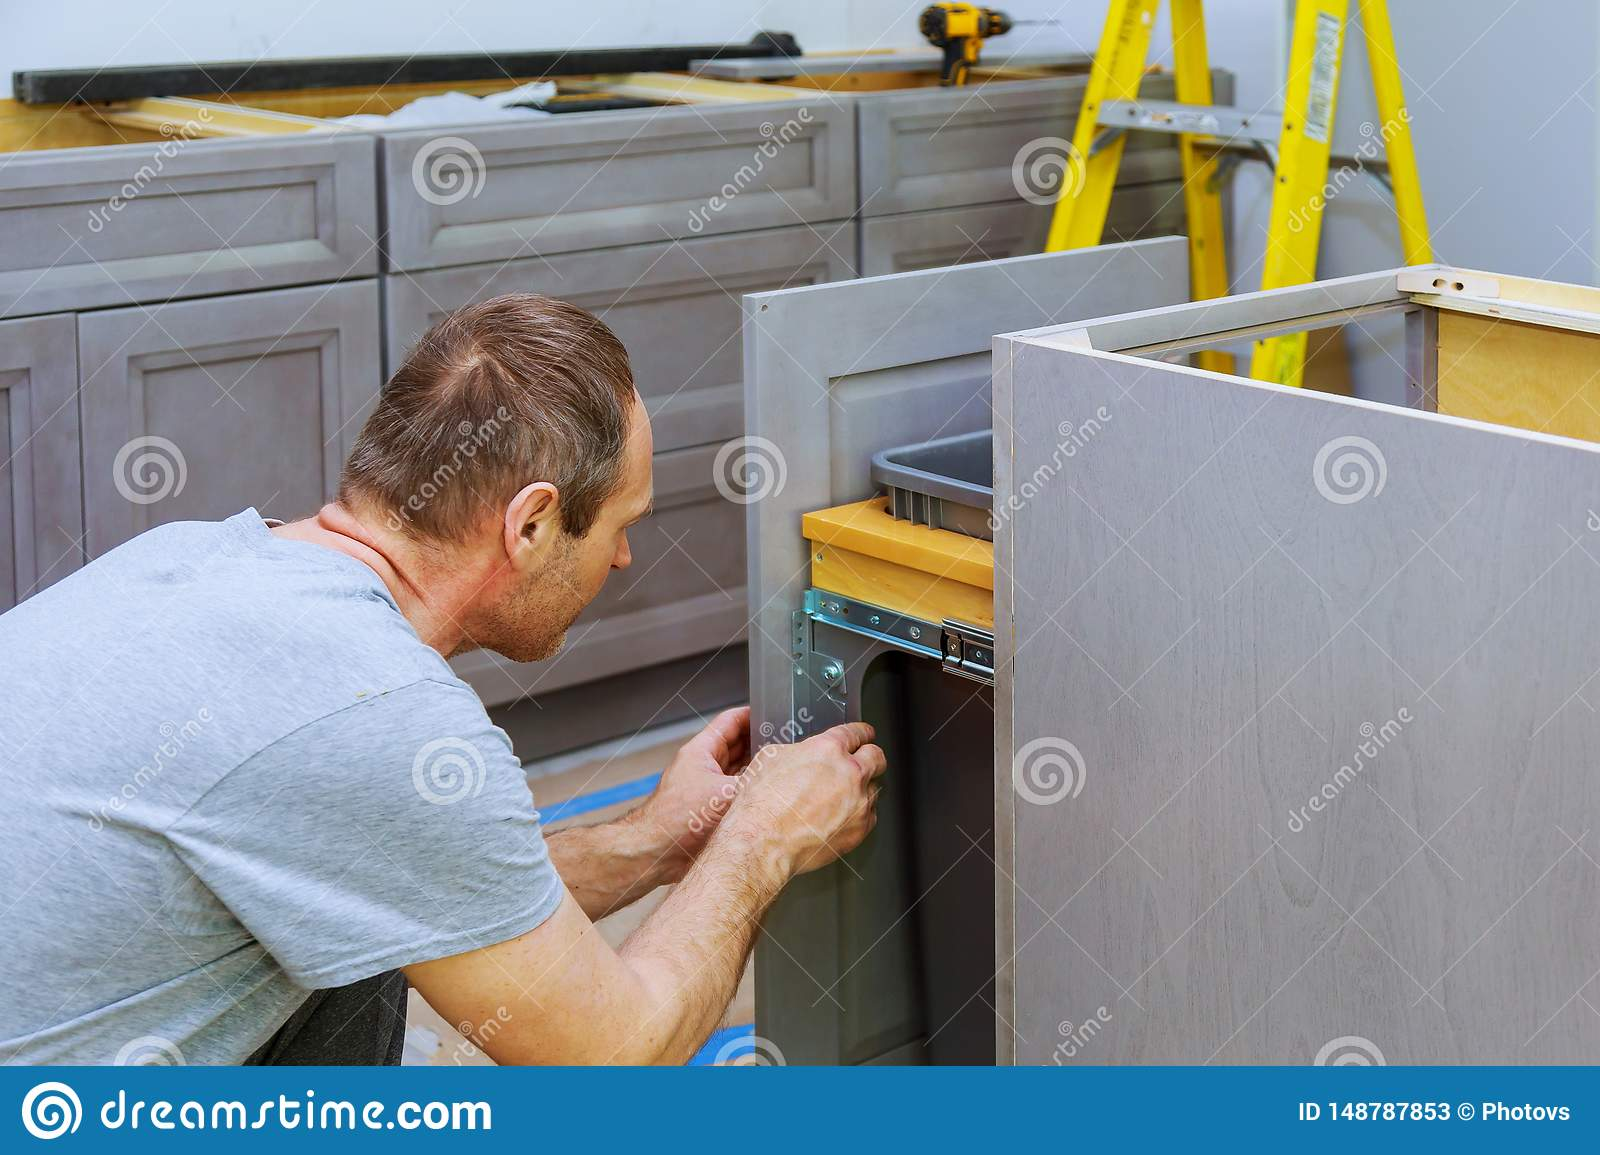 A Carpenter Is Building A Drawers Garbage Bin In The Kitchen